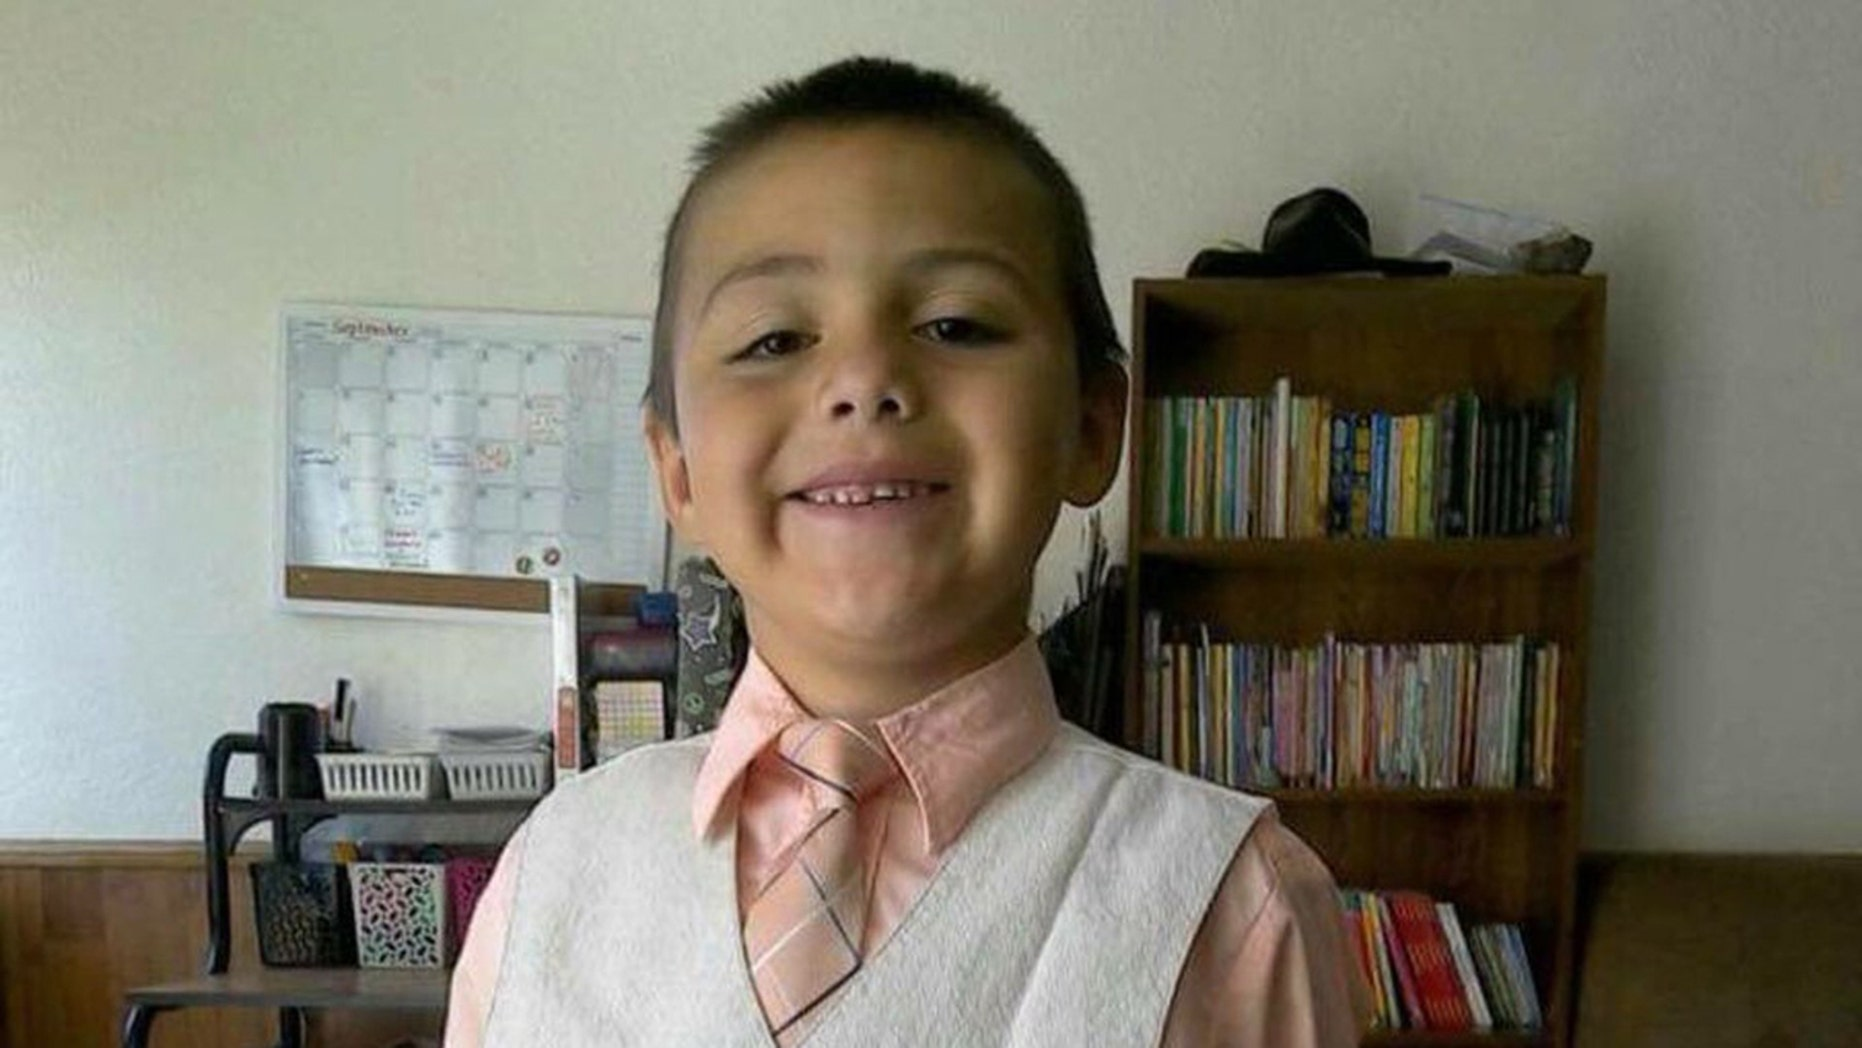 Anthony Avalos, 10, was tortured and murdered in June, authorities say. His mother and her boyfriend could face the death penalty for their alleged roles in his death.